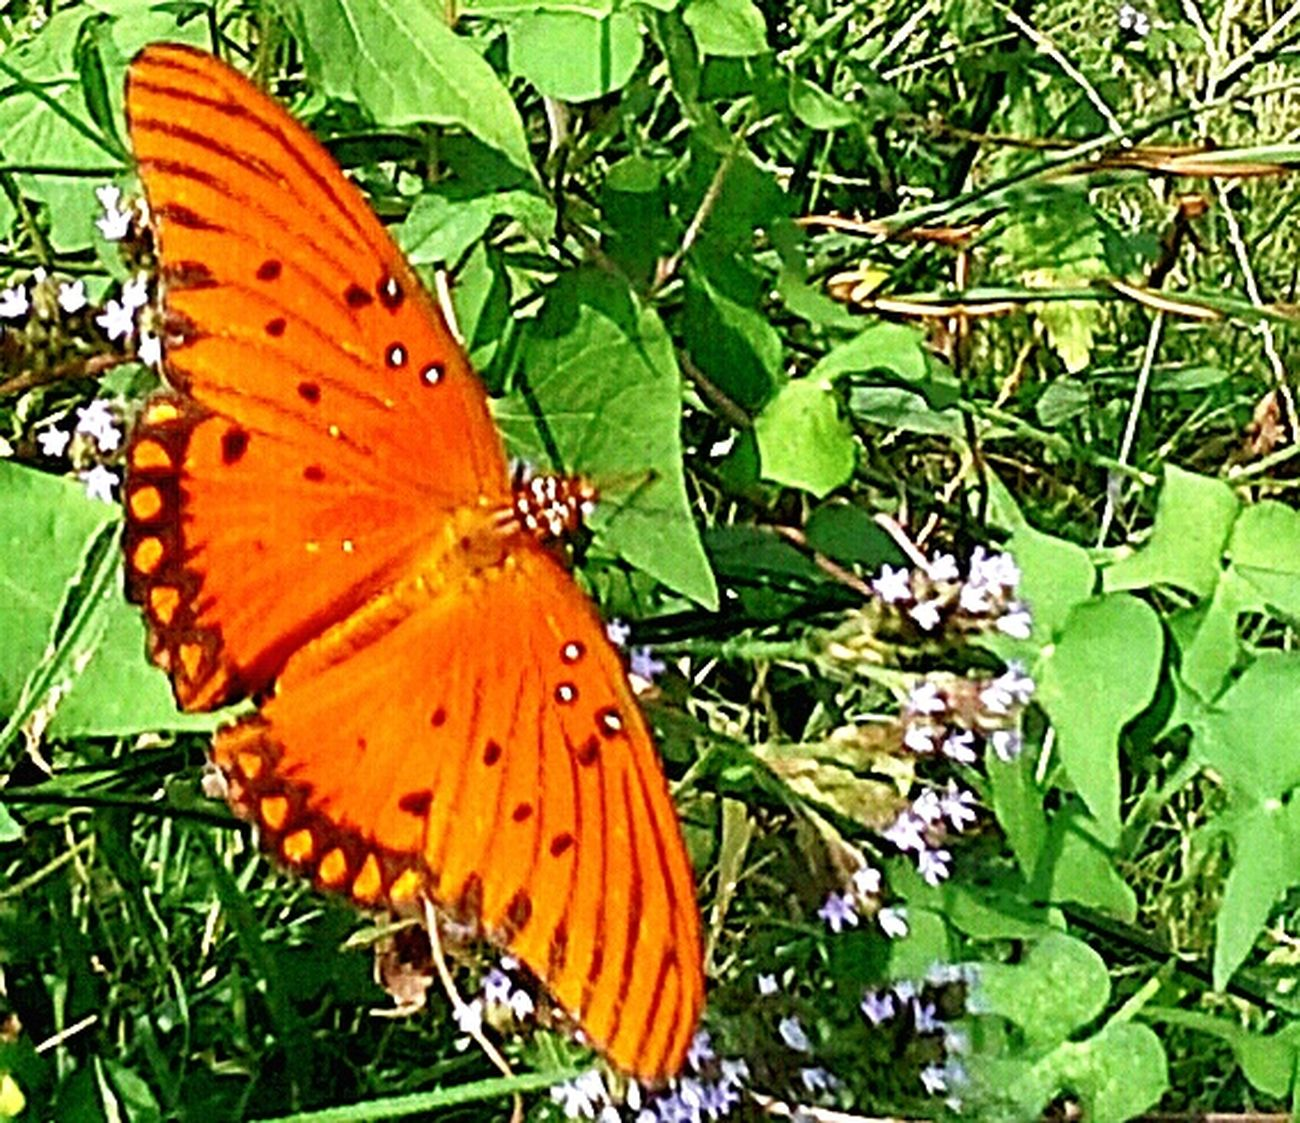 Texas Check This Out Nature Wild Somerville Photo Savage Light And Shadow Mariposa